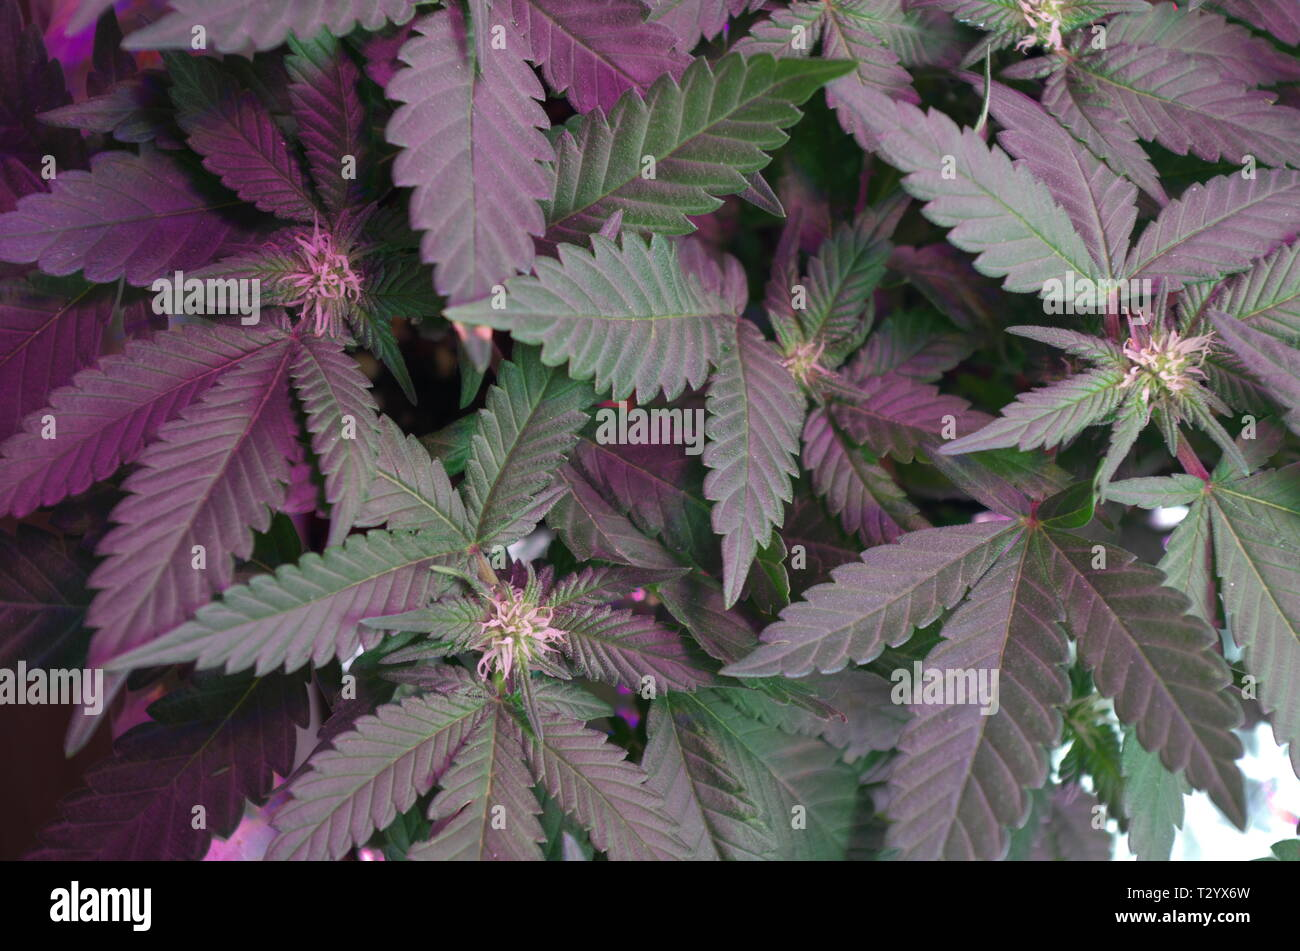 Marijuana plants (cannabis sativa indica hybrids) display bud growth